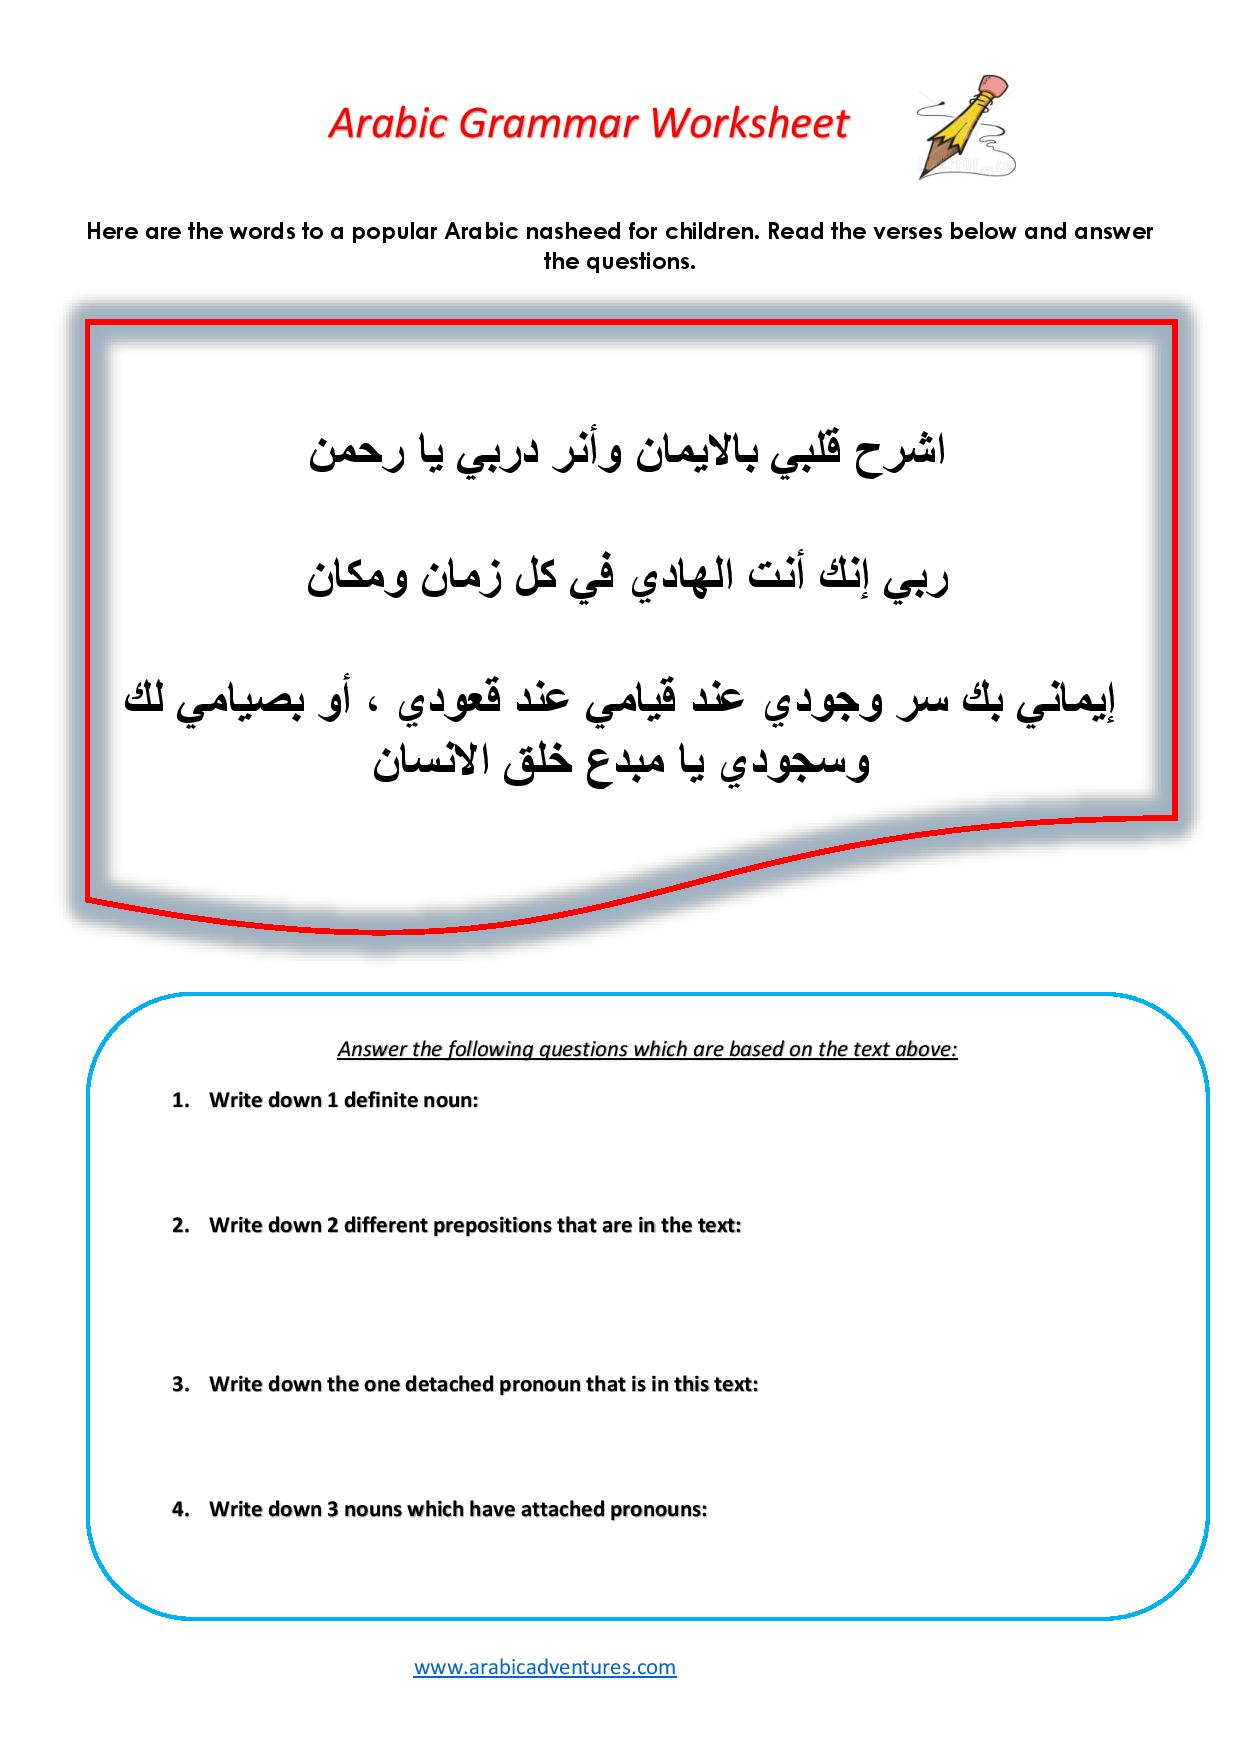 Arabic Grammar Worksheet